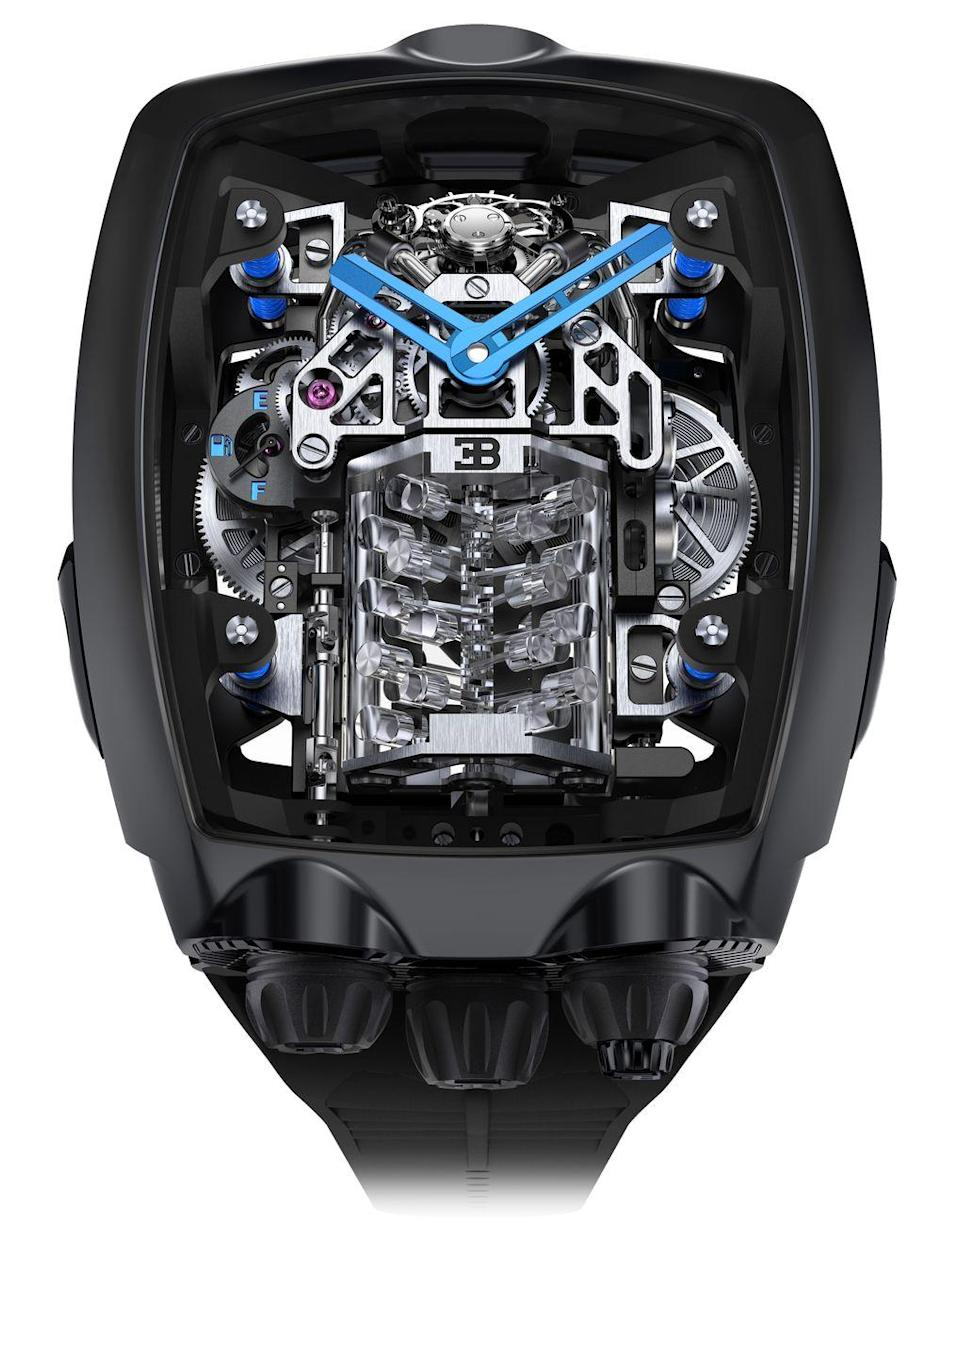 "<p>Leave it to Jacob Arabo to recreate the visceral sensation of the iconic Bugatti 16-Cylinder engine in a timepiece. The Bugatti Chiron Tourbillon was inspired by the sleek lines of the car and its powerful engine, and when the watch's right-hand crown is pushed, it comes to life like the car's motor: the crankshaft turns and the pistons pump up and down and two ""turbochargers"" spin while the movement runs, adding visual impact. It's a miniaturized machine under a transparent sapphire case. <em>($280,000)</em></p><p><a class=""link rapid-noclick-resp"" href=""http://jacobandco.com/"" rel=""nofollow noopener"" target=""_blank"" data-ylk=""slk:Learn More"">Learn More</a><br></p>"